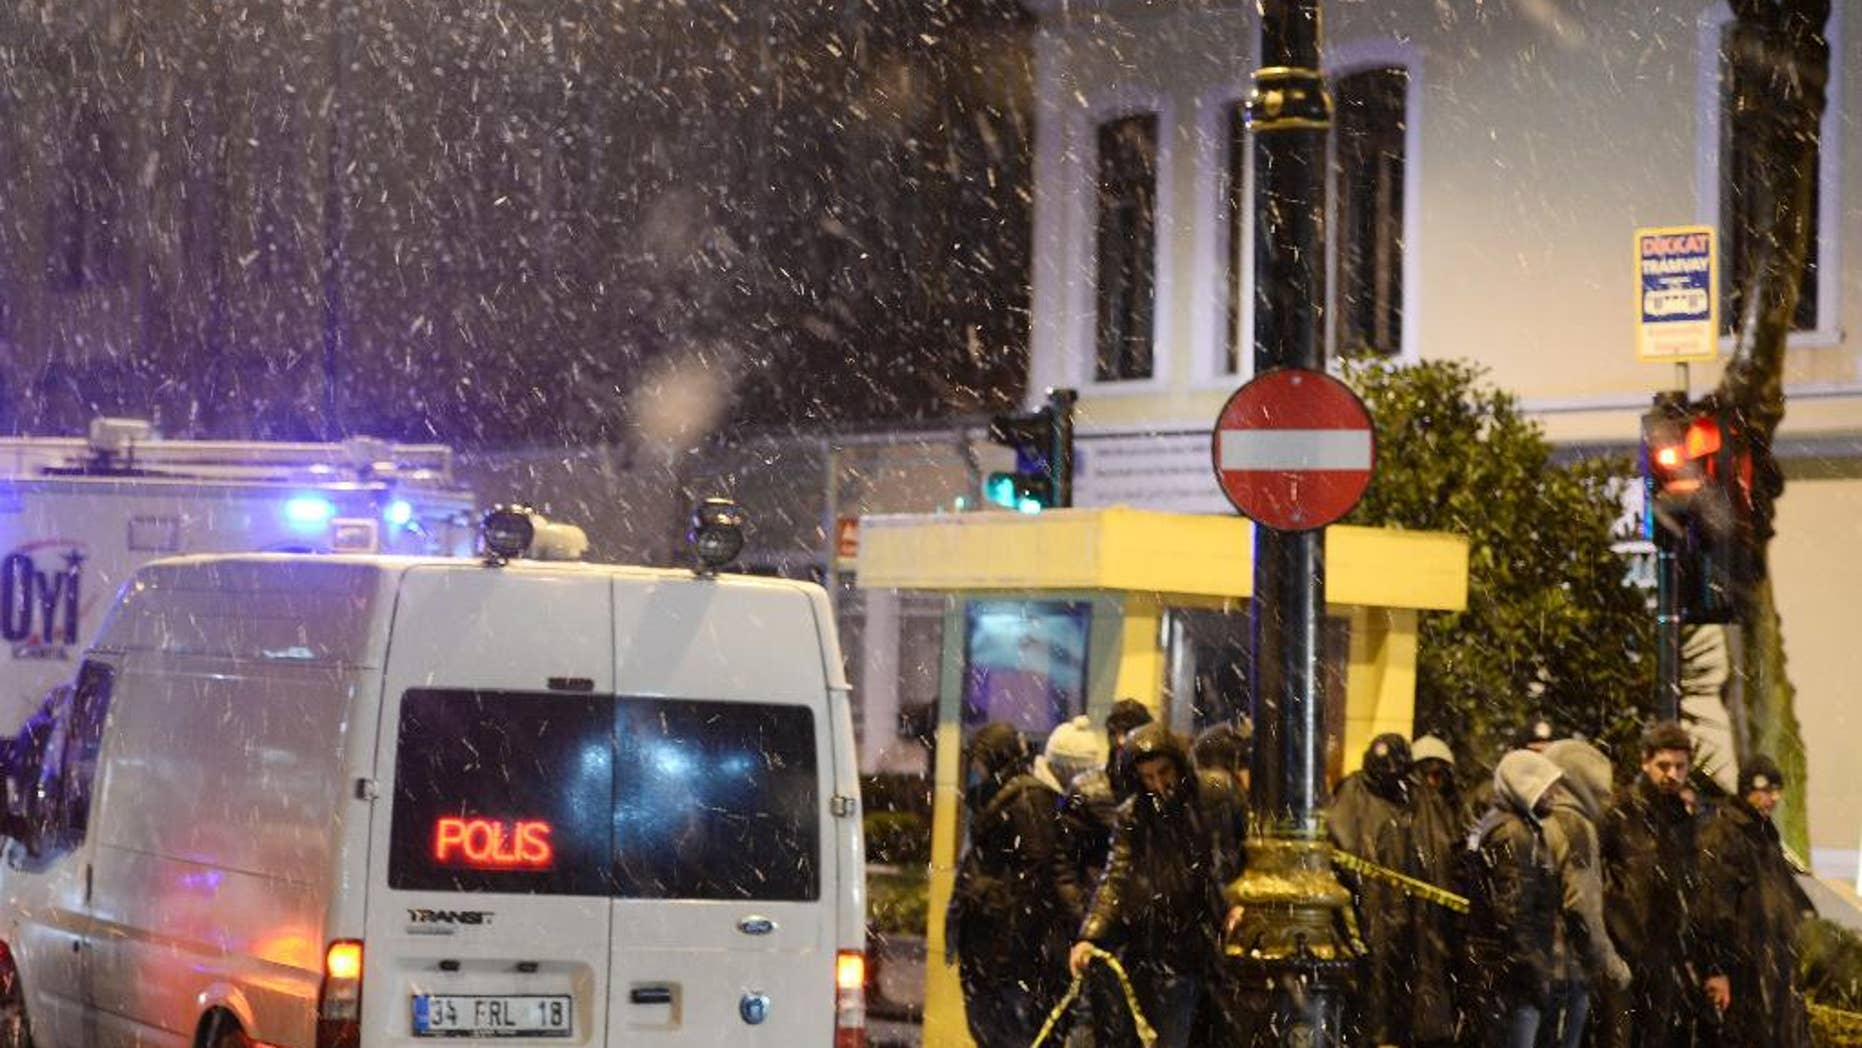 Turkish security members are seen outside the police station, after a policeman was killed and another injured when a female suicide bomber blew herself up in Istanbul, Turkey, Tuesday, Jan. 6, 2015. Istanbul governor Vasip Sahin said the woman entered a police station and reported a missing wallet before detonating a bomb. The attack occurred in the Sultan Ahmet district, a popular tourist destination.(AP Photo)